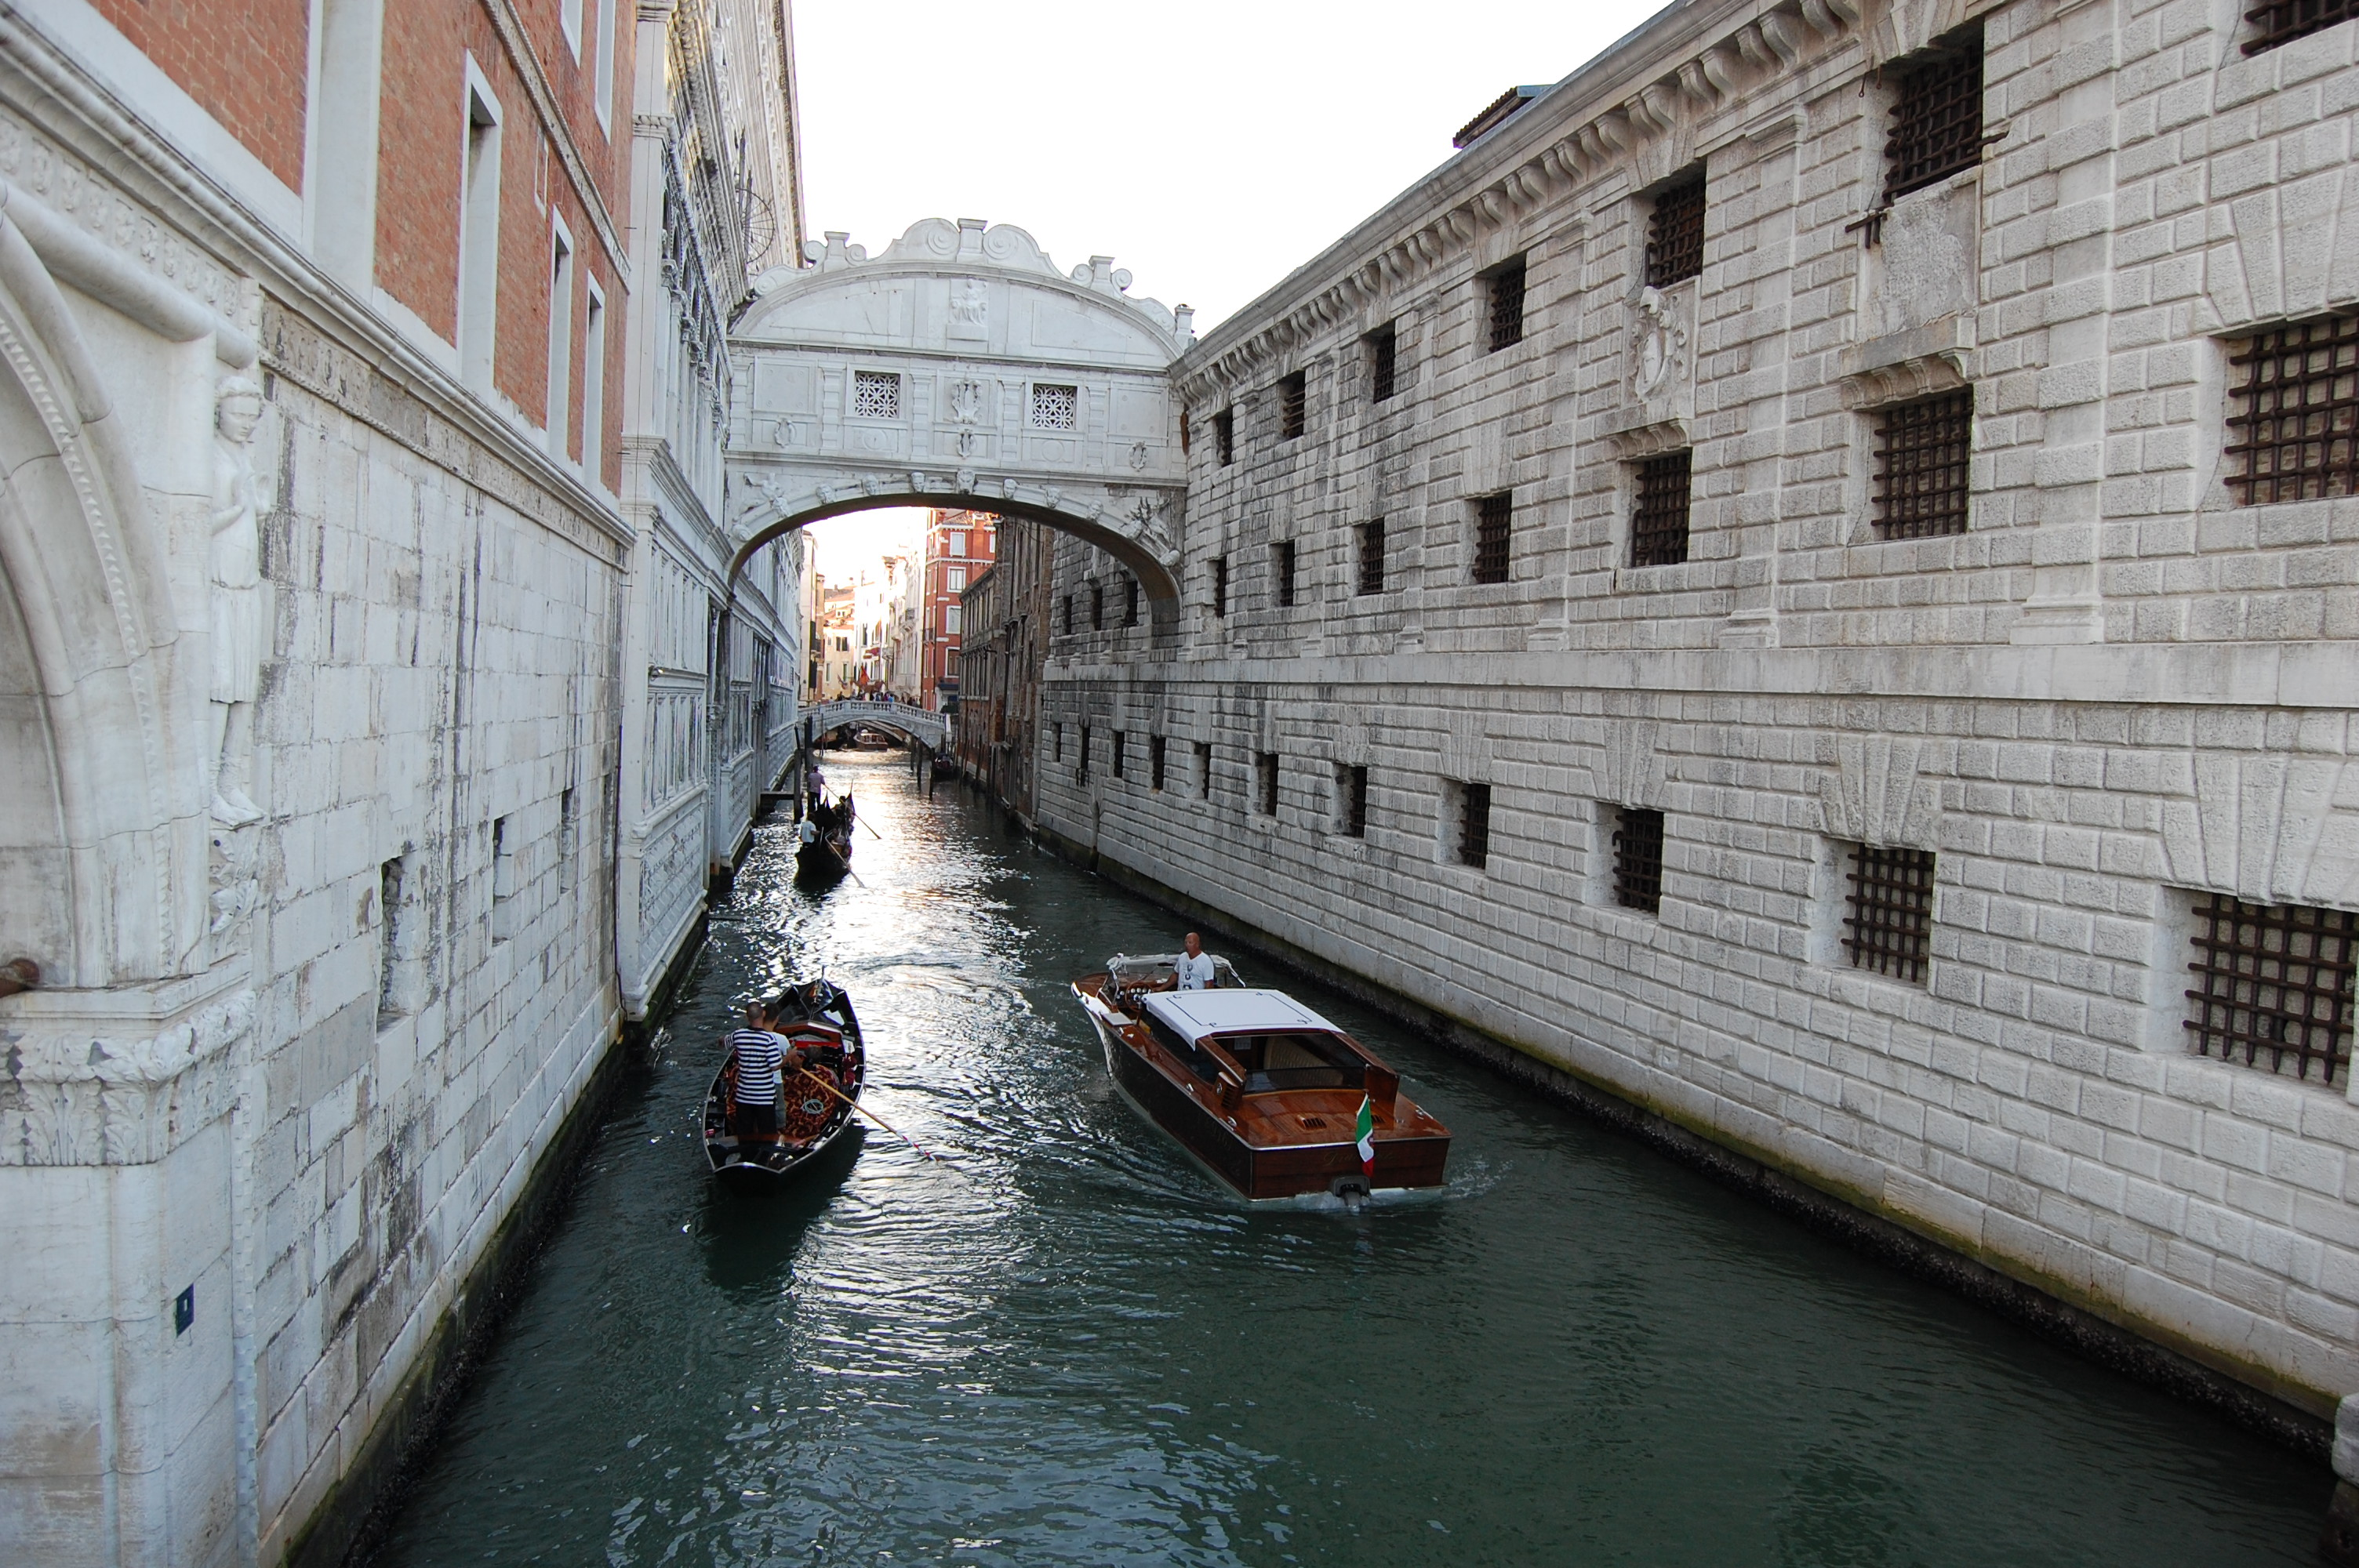 Trying the bridge on for Sighs in Venice